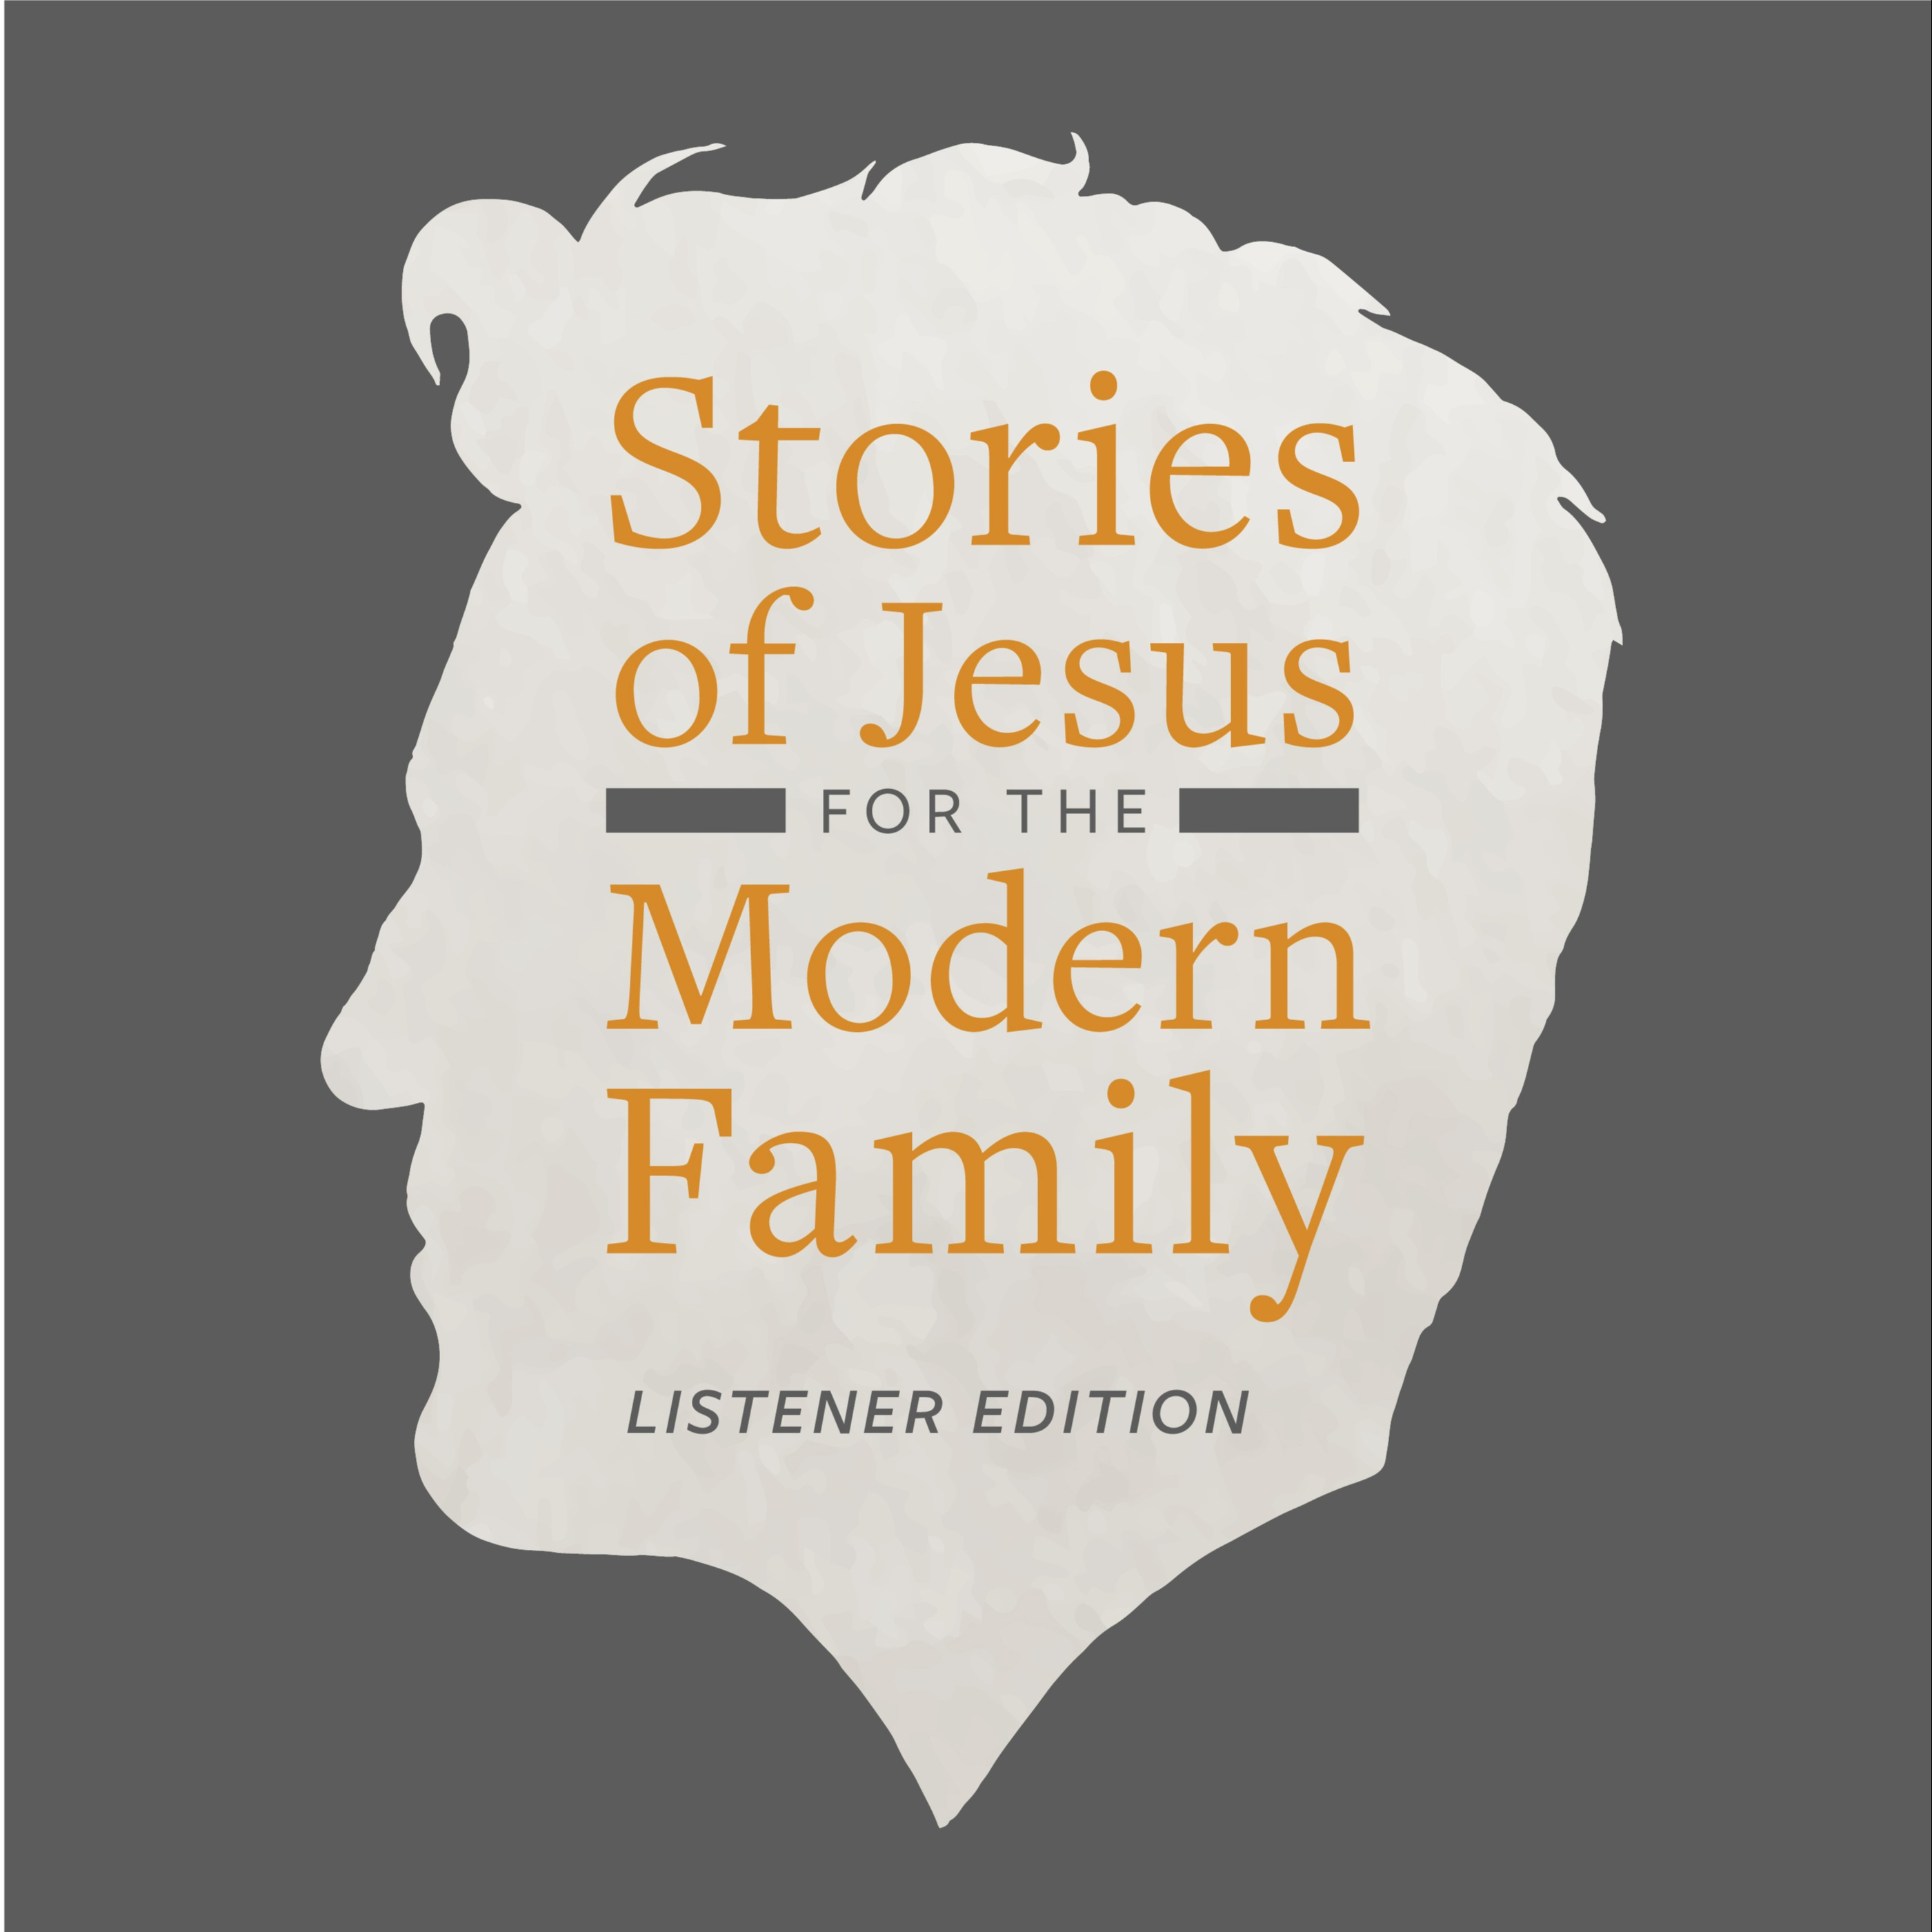 Stories of Jesus for the Modern Family - Listener Edition